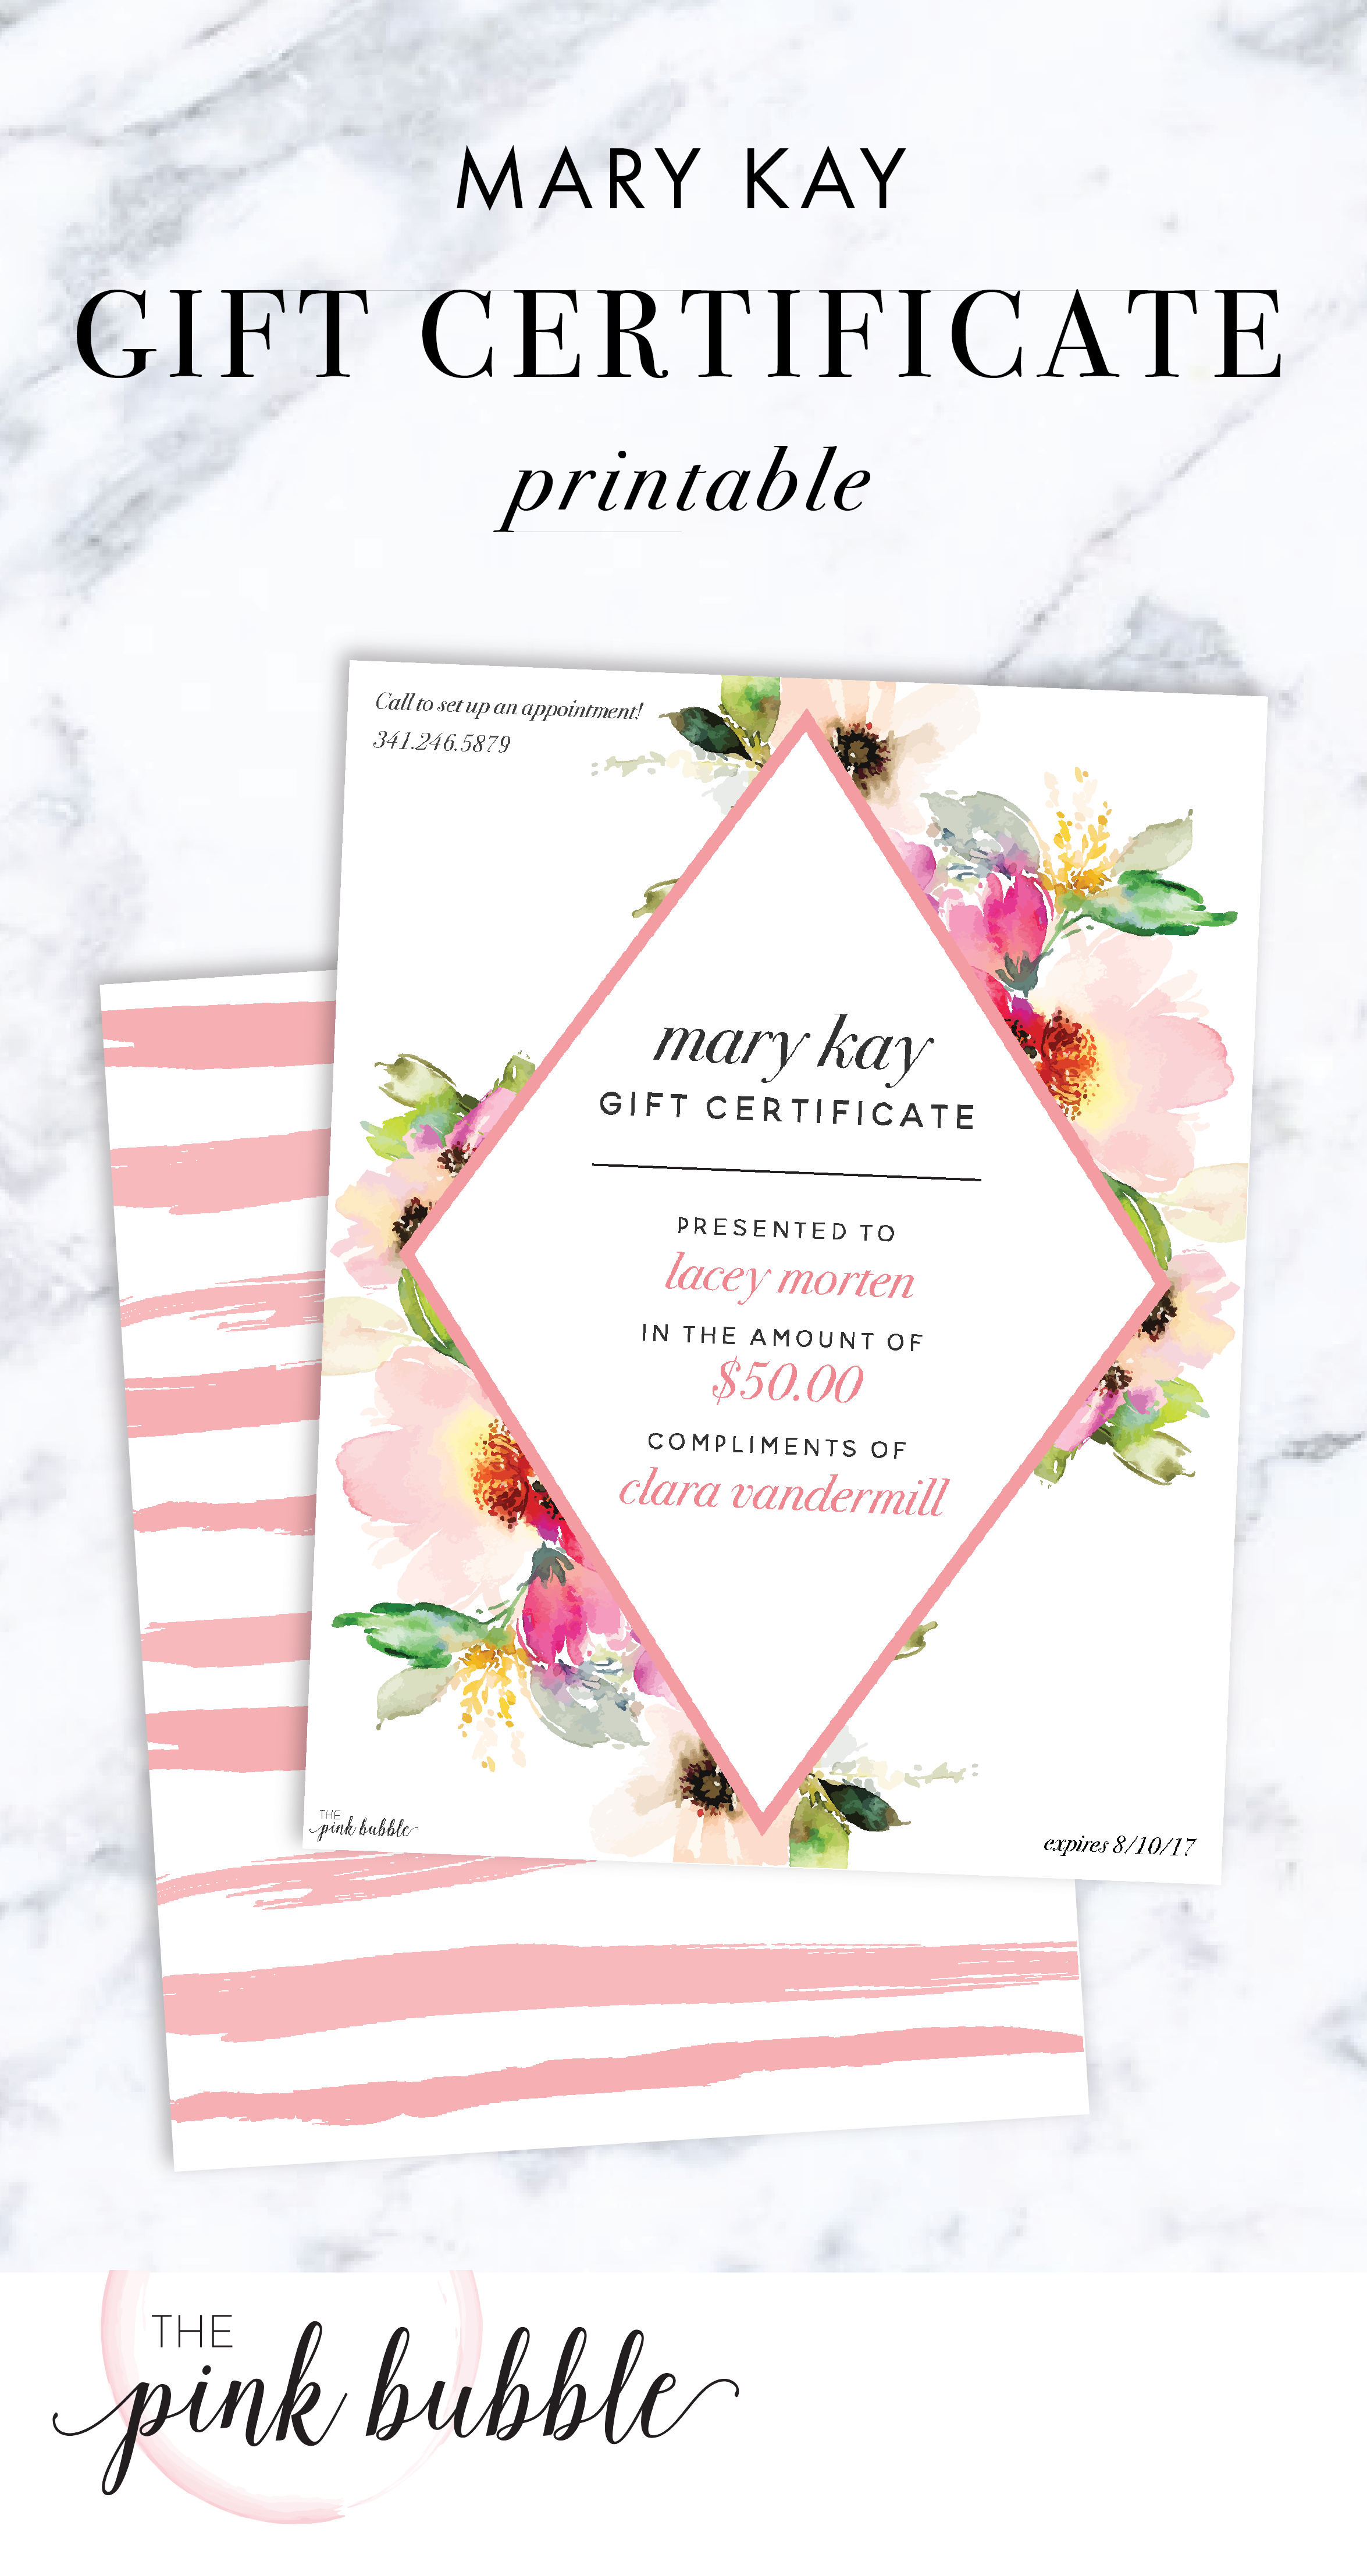 Mary Kay Gift Certificate Find It Only At Thepinkbubble